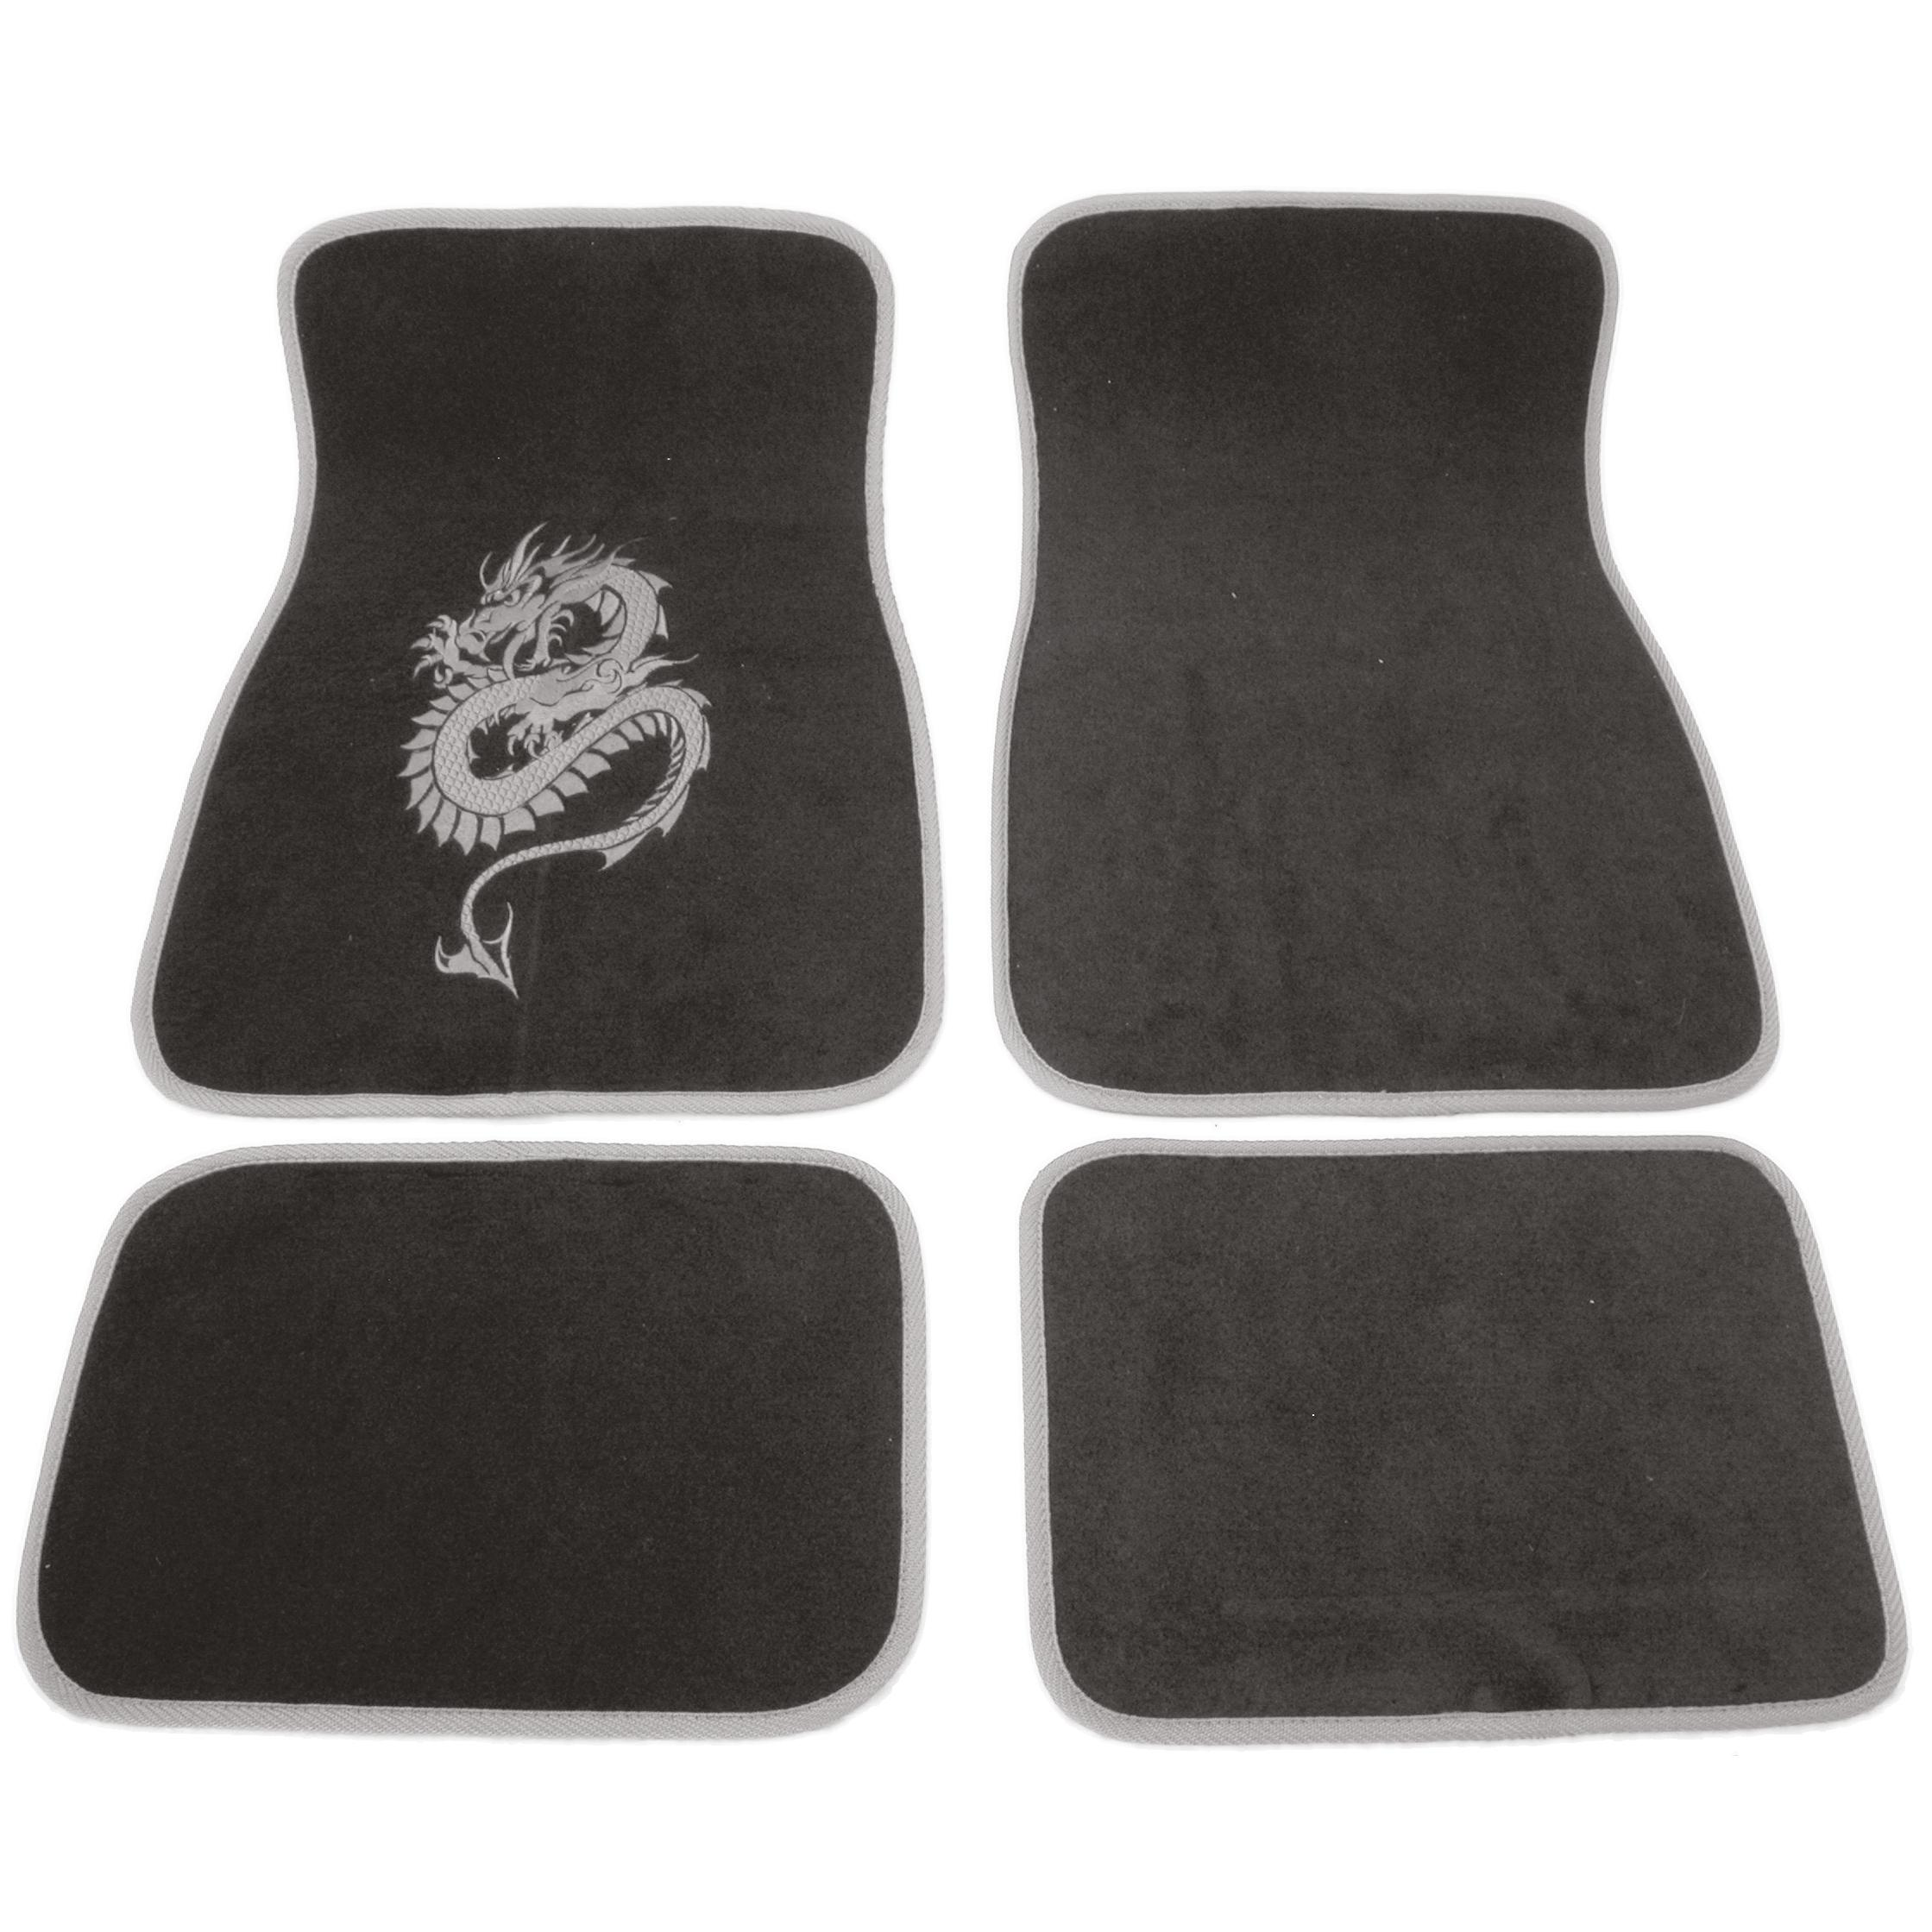 tapis universels adnautomid dragon gris. Black Bedroom Furniture Sets. Home Design Ideas